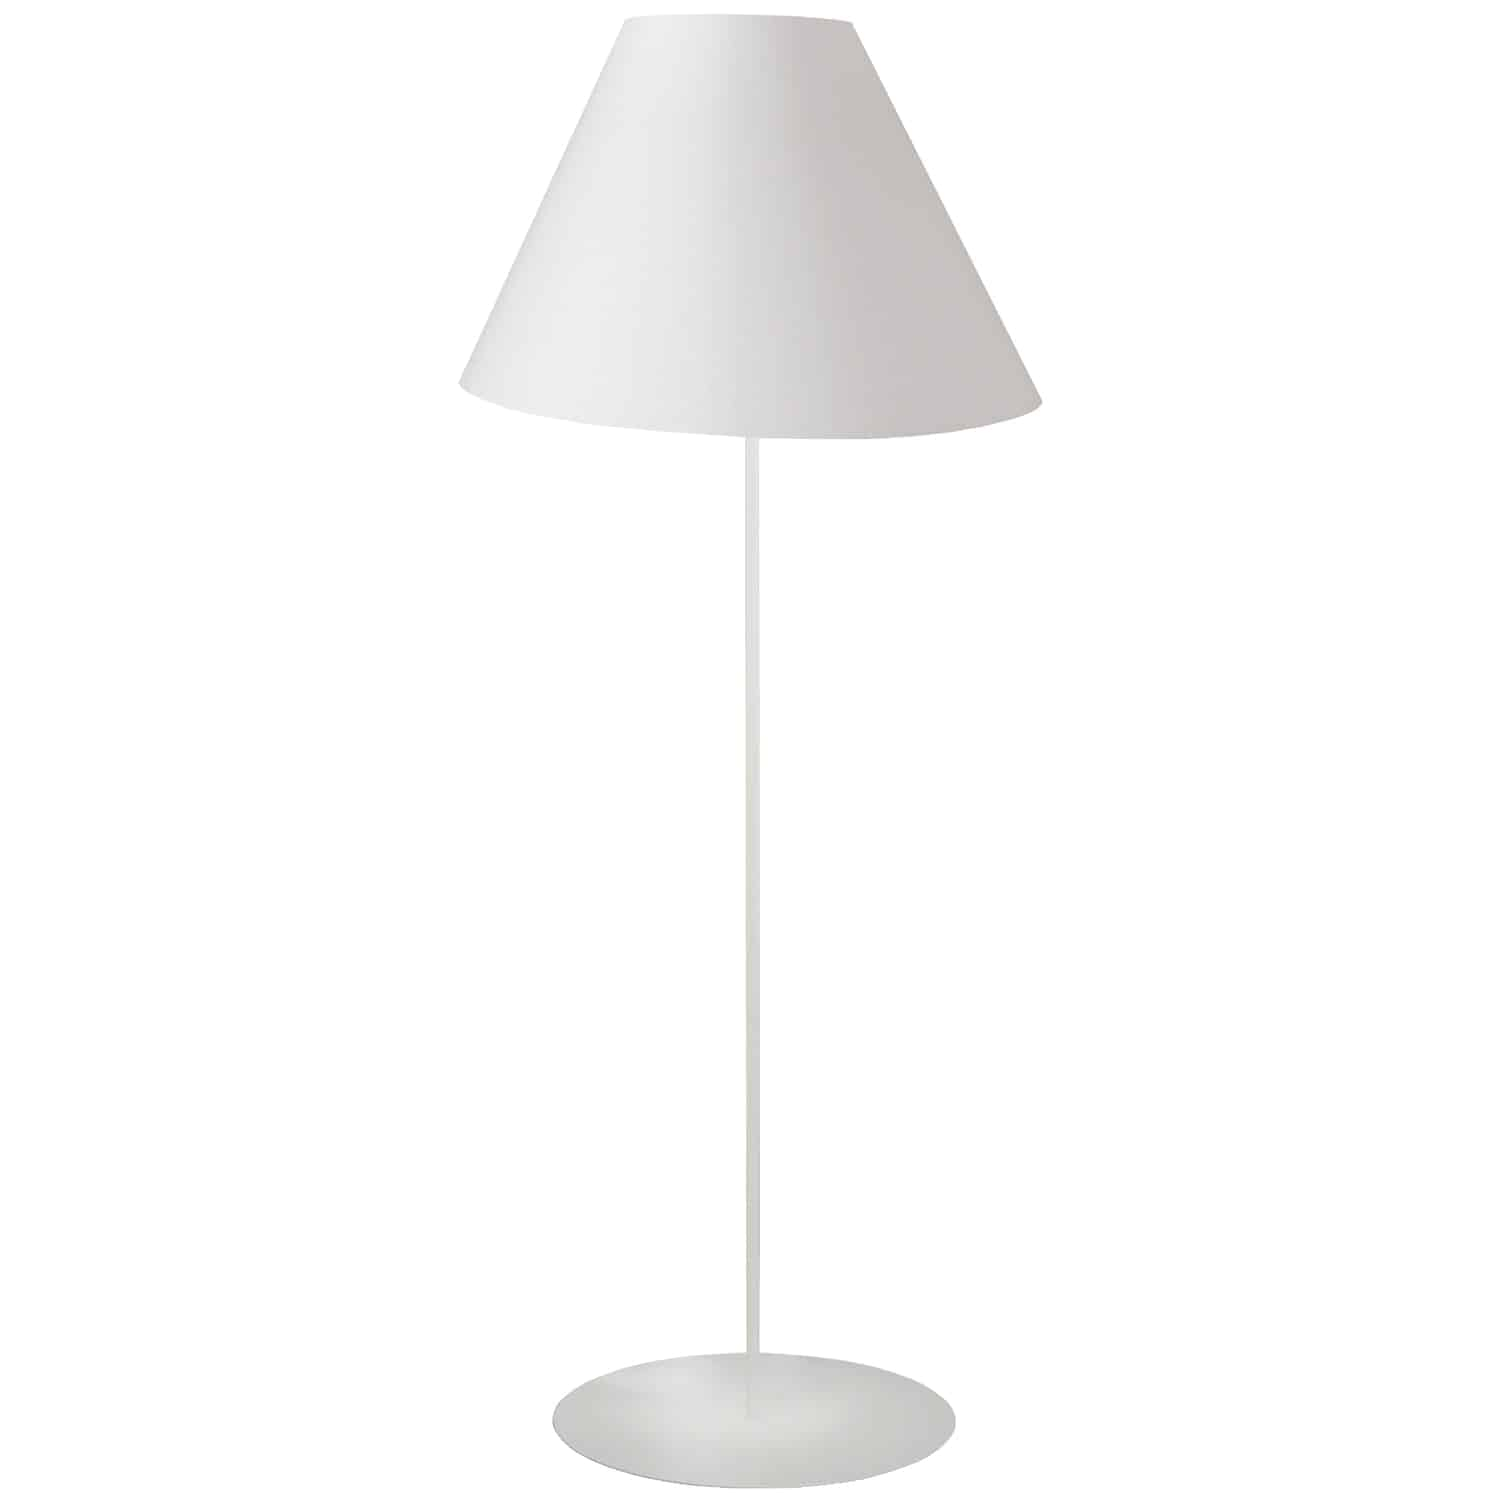 1LT Tapered Floor Lamp w/ White Shade